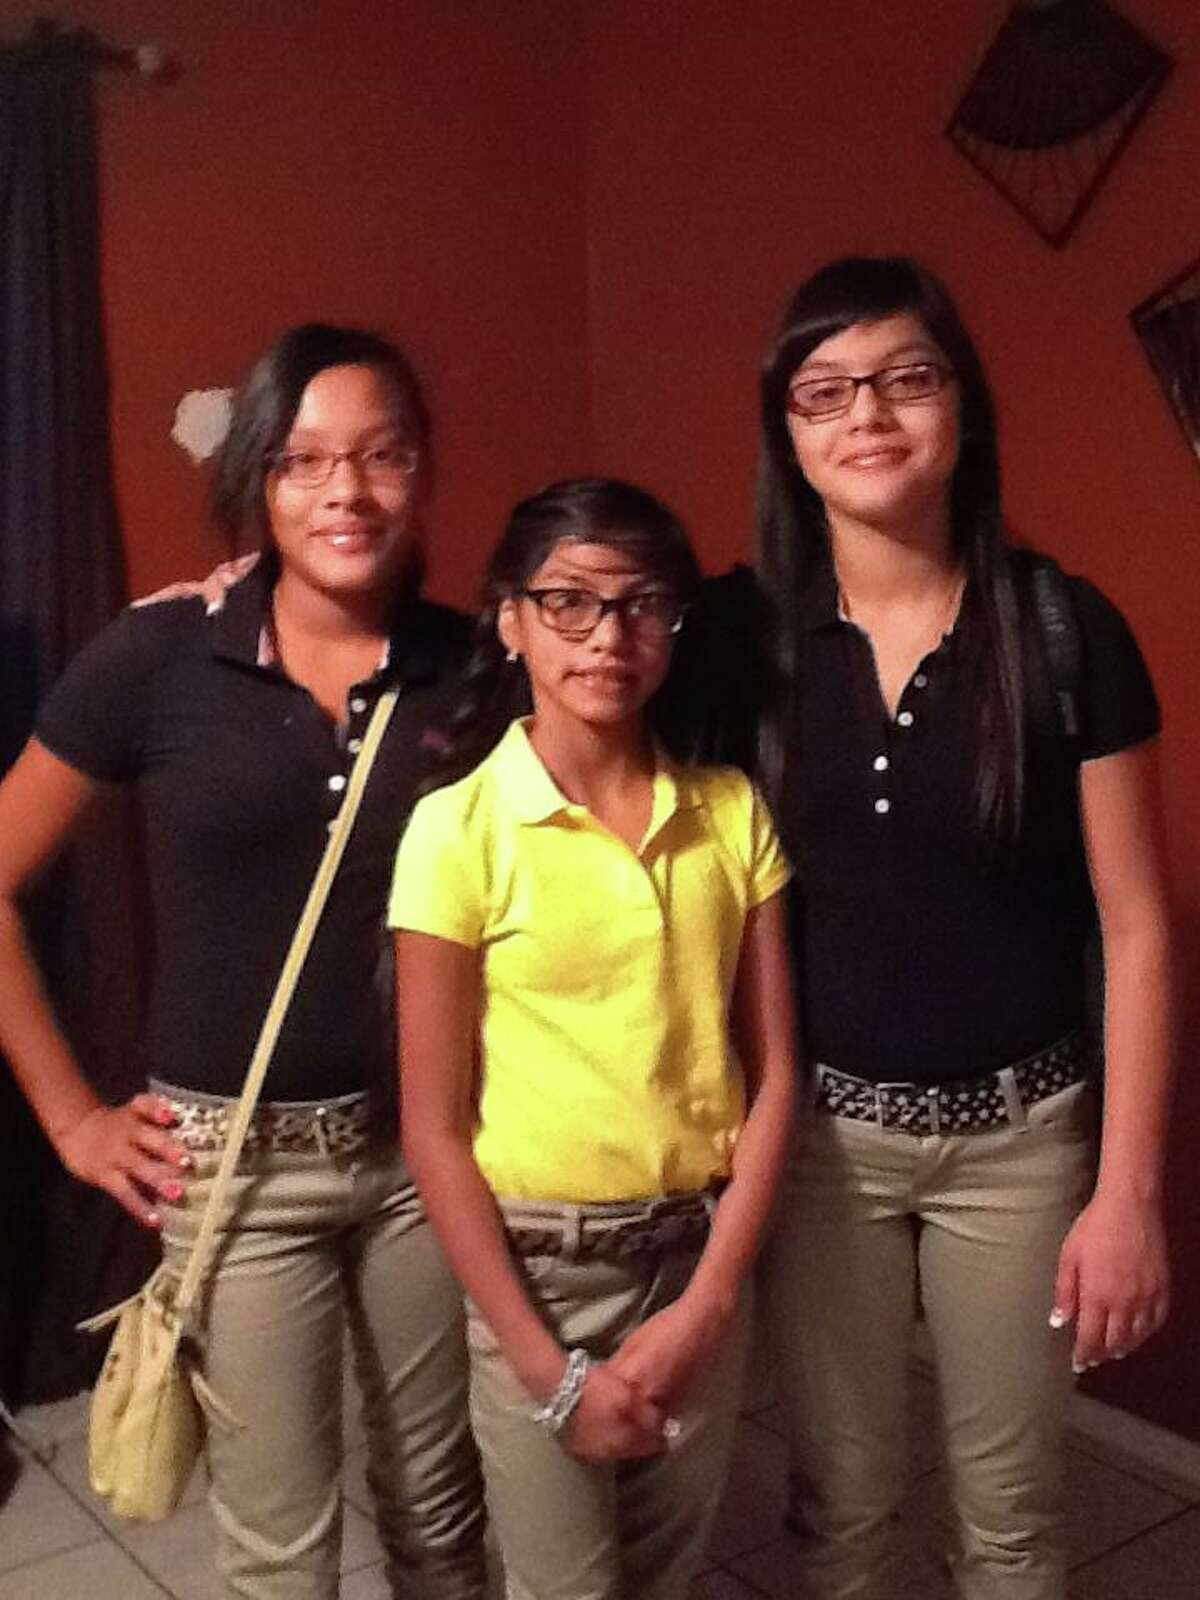 First day of middle school. Share your first day photos.